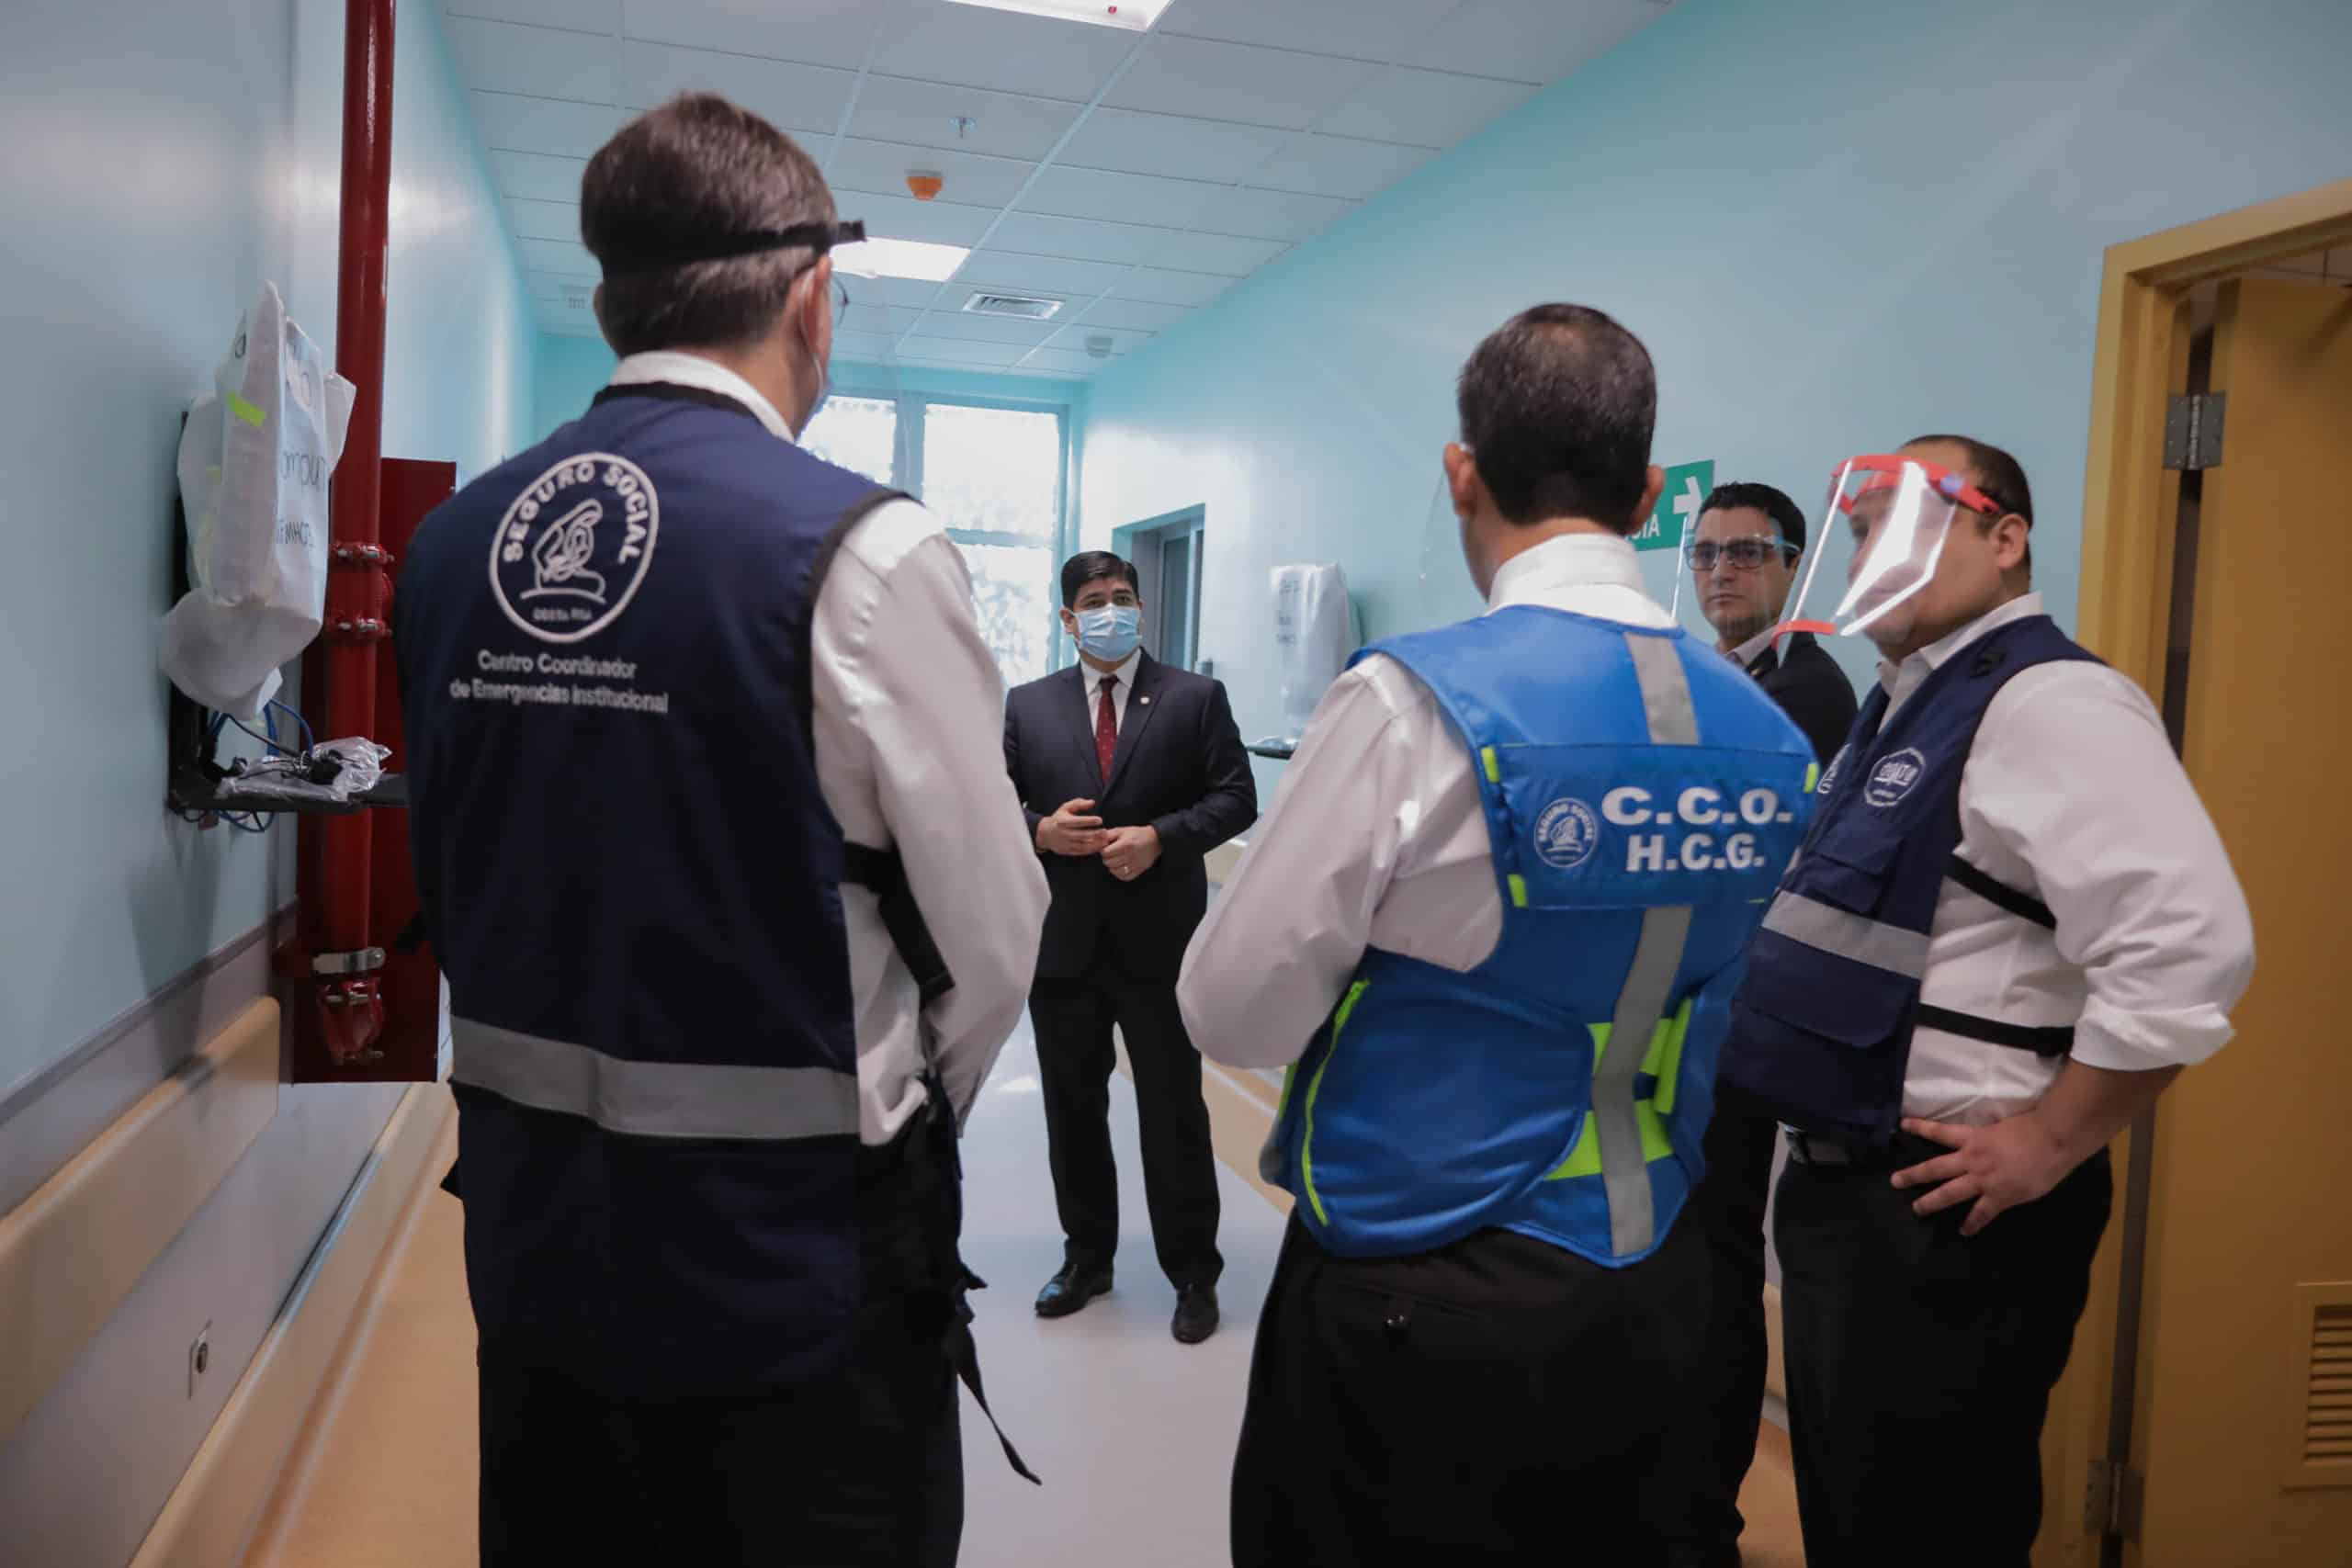 President Carlos Alvarado and health authorities at Calderón Guardia Hospital in San José, Costa Rica